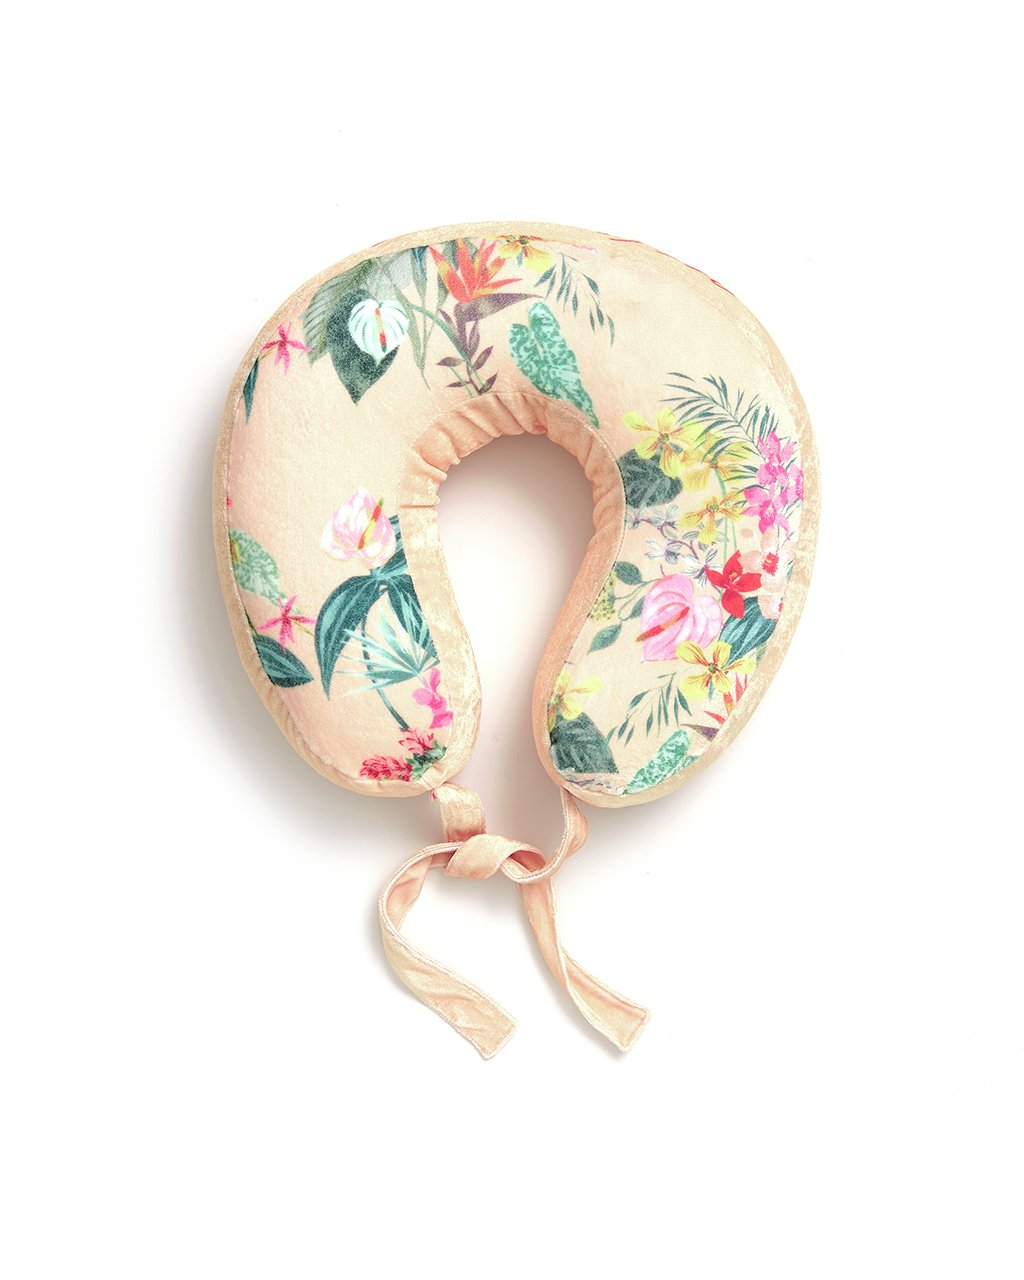 This Getaway Travel Pillow comes in a colorful floral pattern designed by Helen Dealtry and Katy Jones.